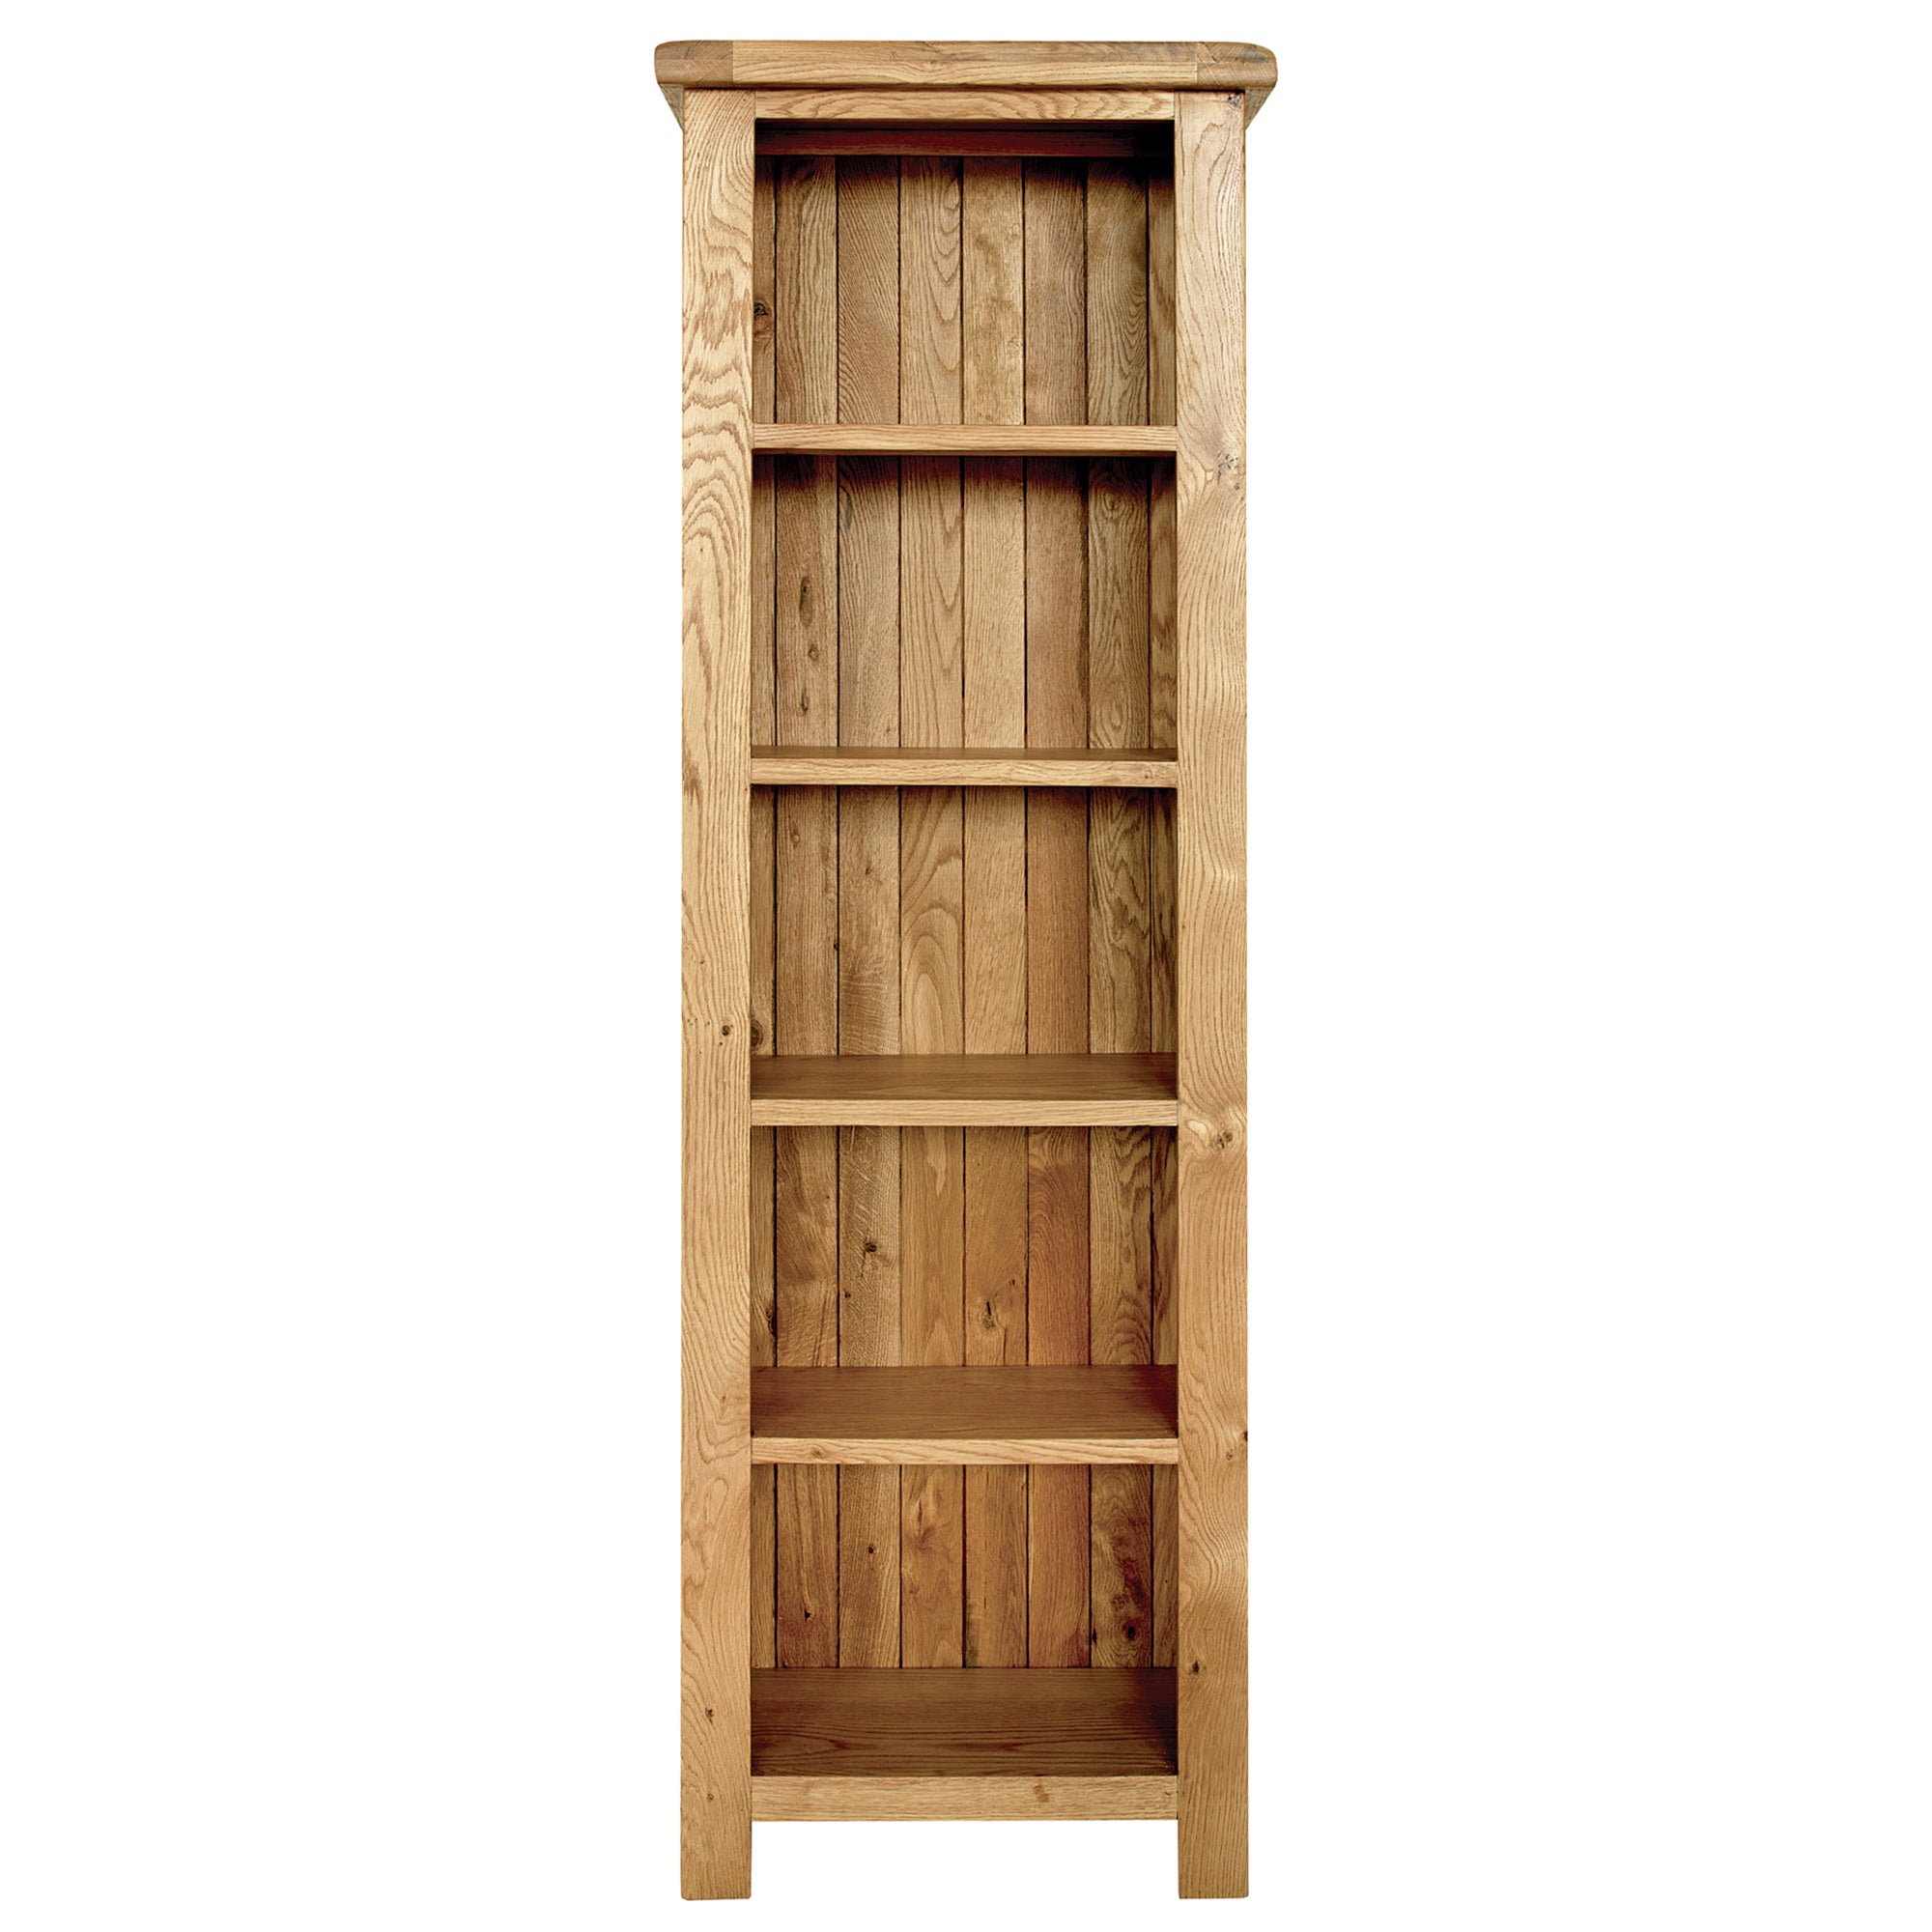 Aylesbury Oak Slim Bookcase